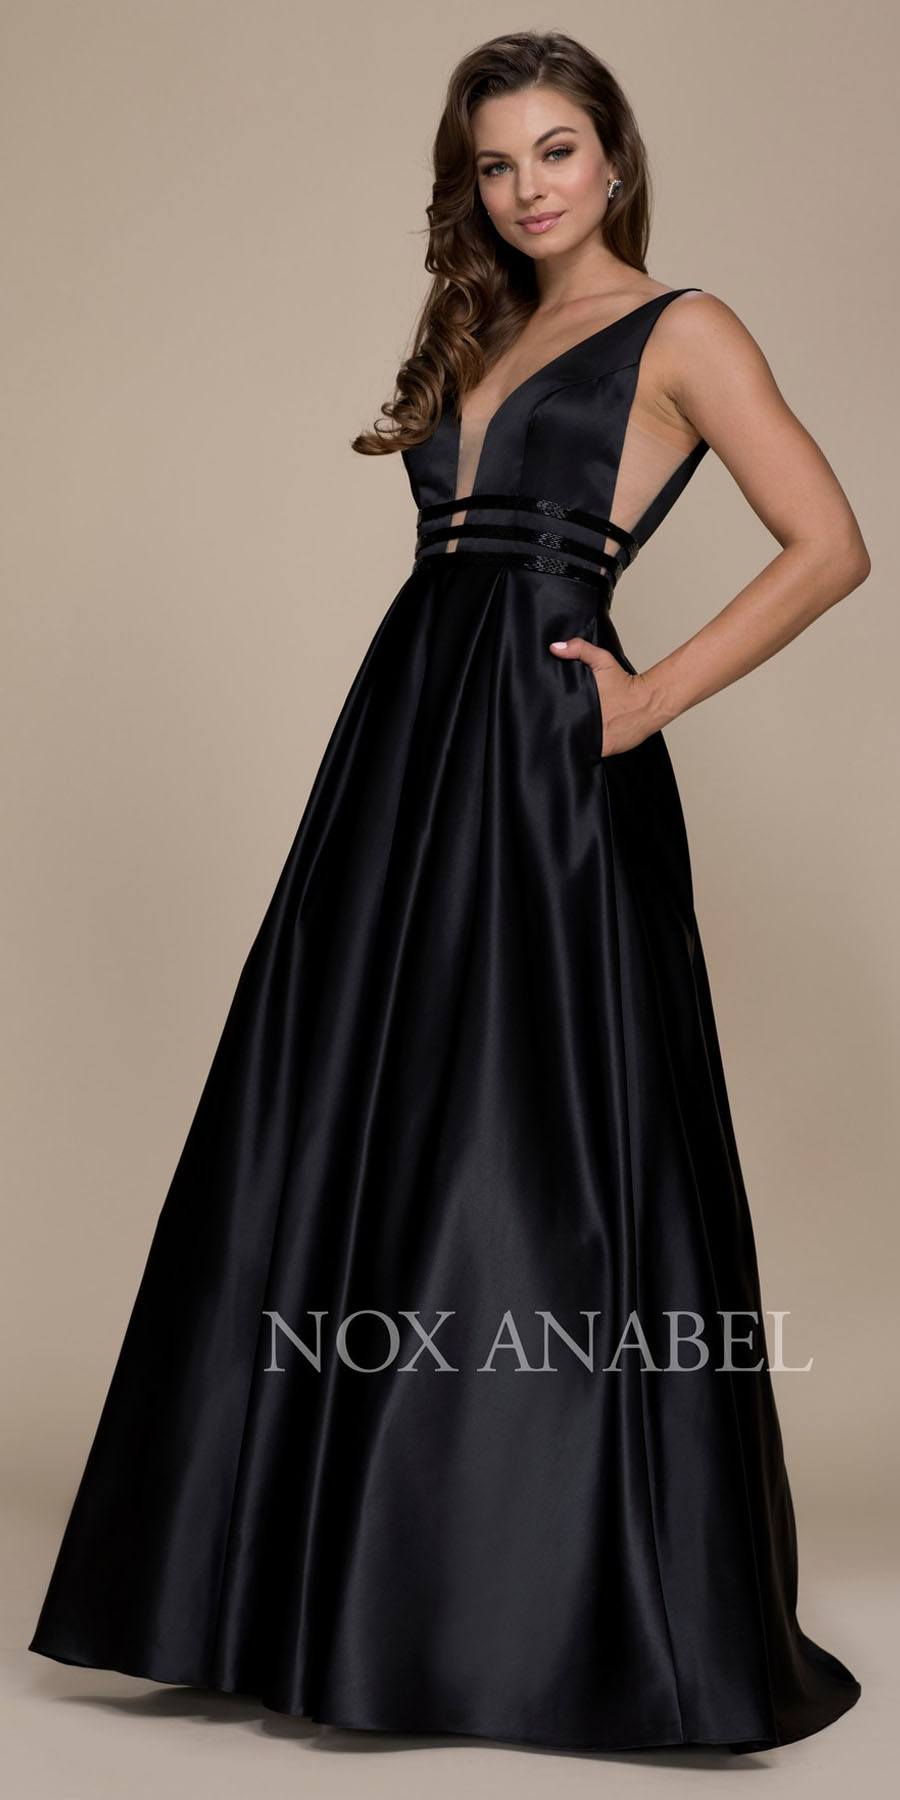 0029361bfb Black V-Neck Long Prom Dress Sheer Cut Out with Pockets. Tap to expand